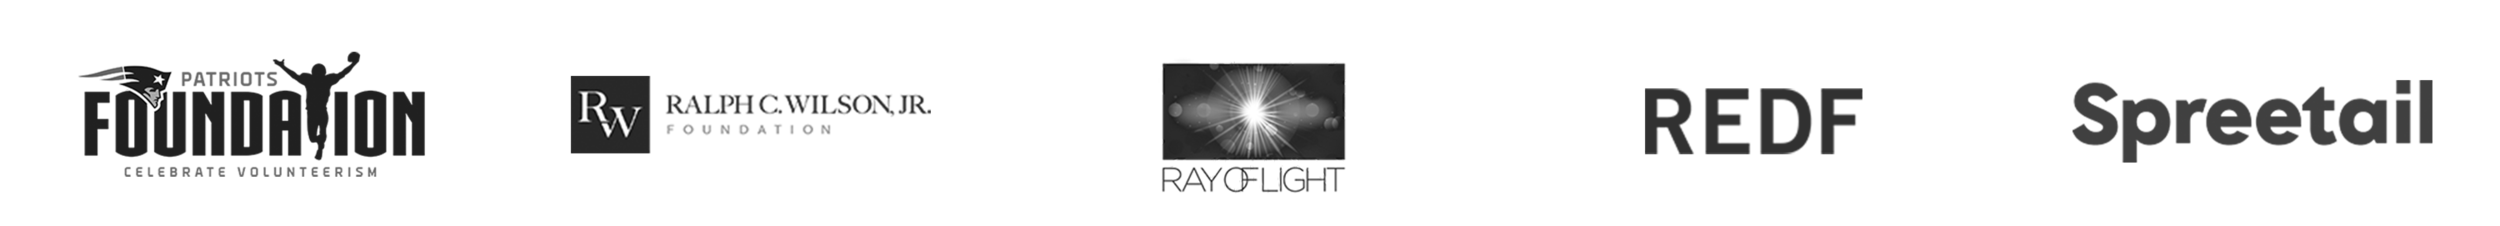 empowered-by-logos4.png